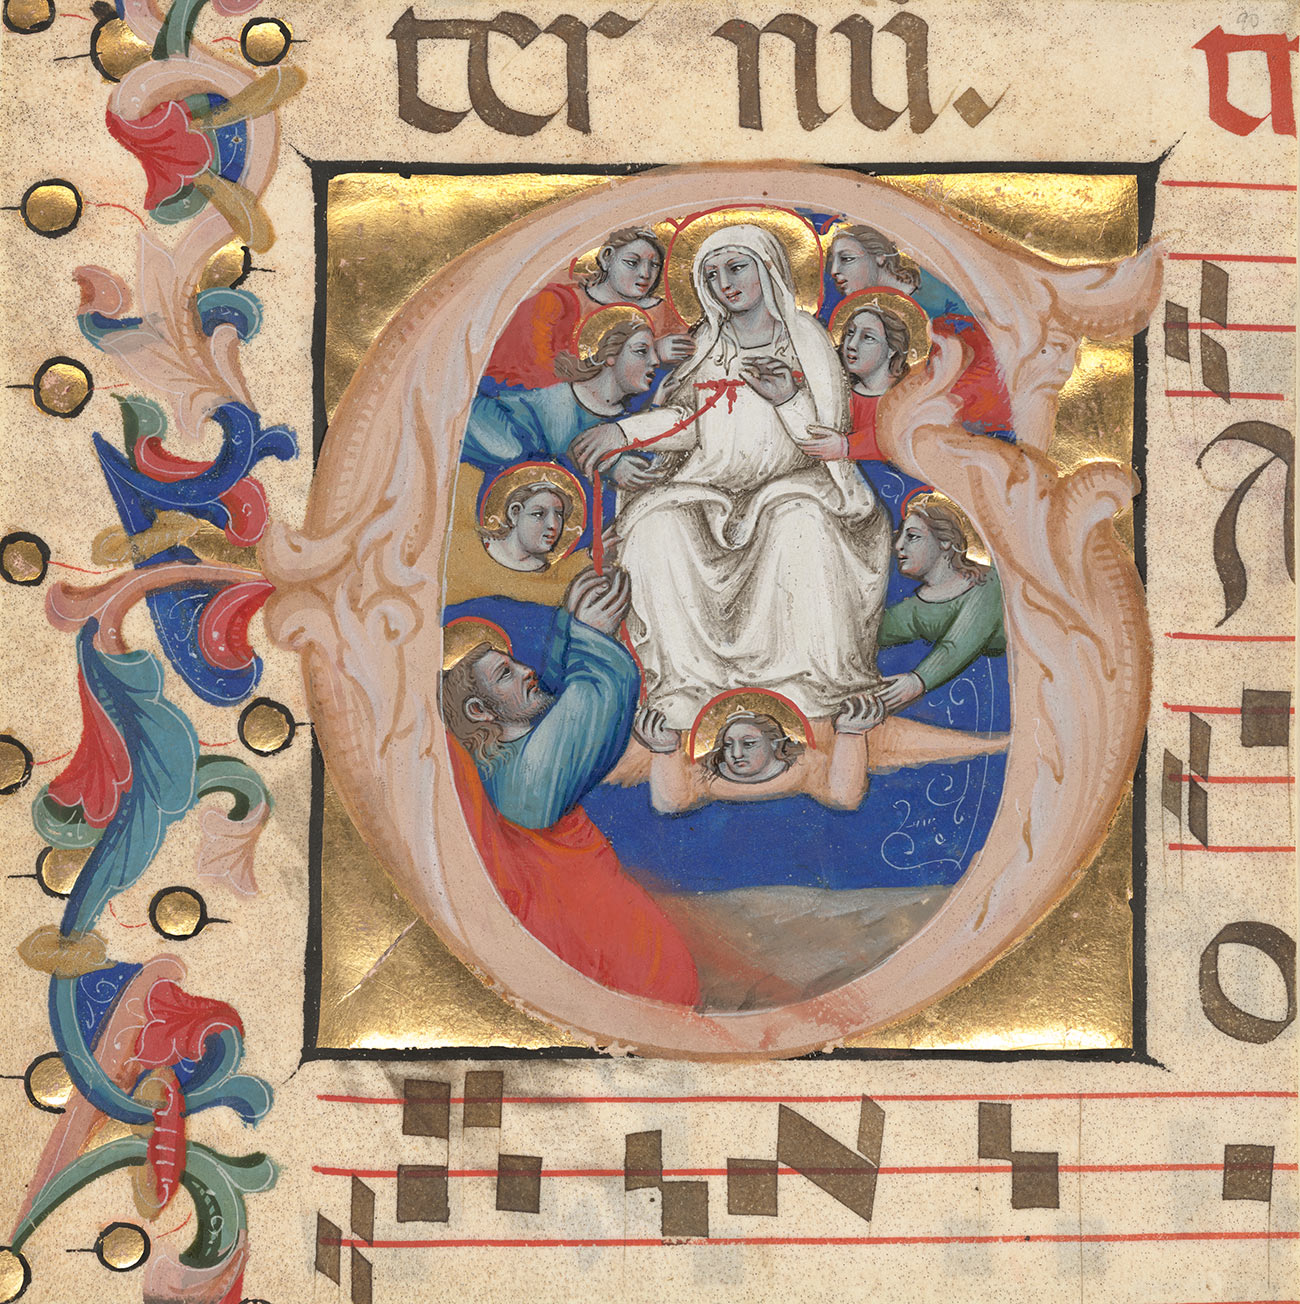 A detail of a medieval illumination inside of the letter G. At the center is the Virgin Mary dressed in all white.